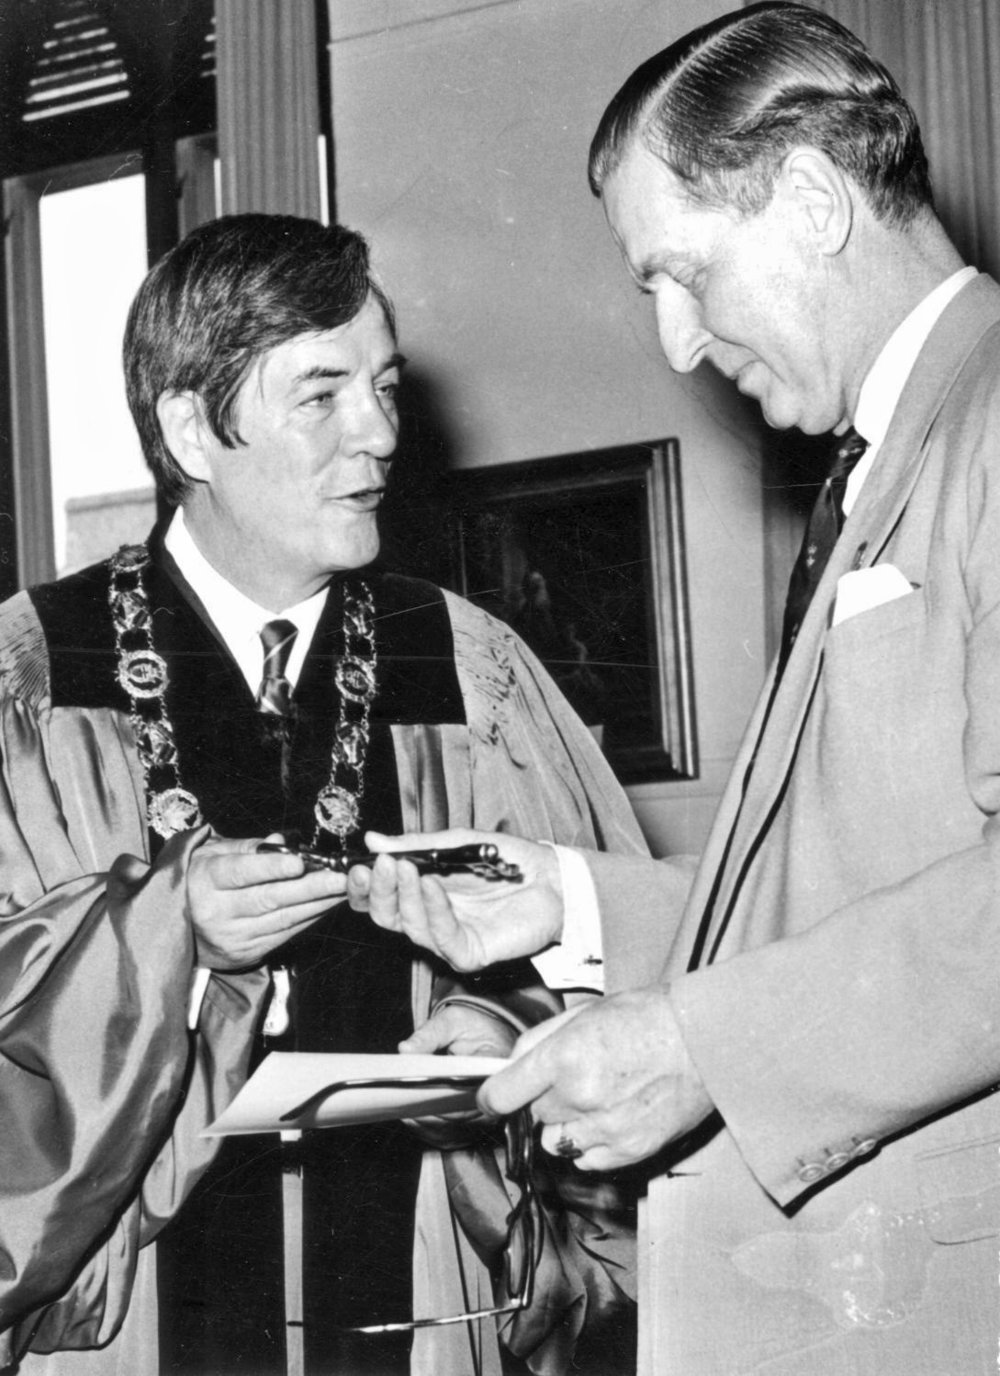 Russell Scott, wearing chain of office as mayor of Belleville, is shown presenting the key to the city to an unidentified recipient. Dr. Scott was distinguished by an approachable and down-to-earth demeanour. Photo courtesy of Belleville and Hastings County Community Archives.